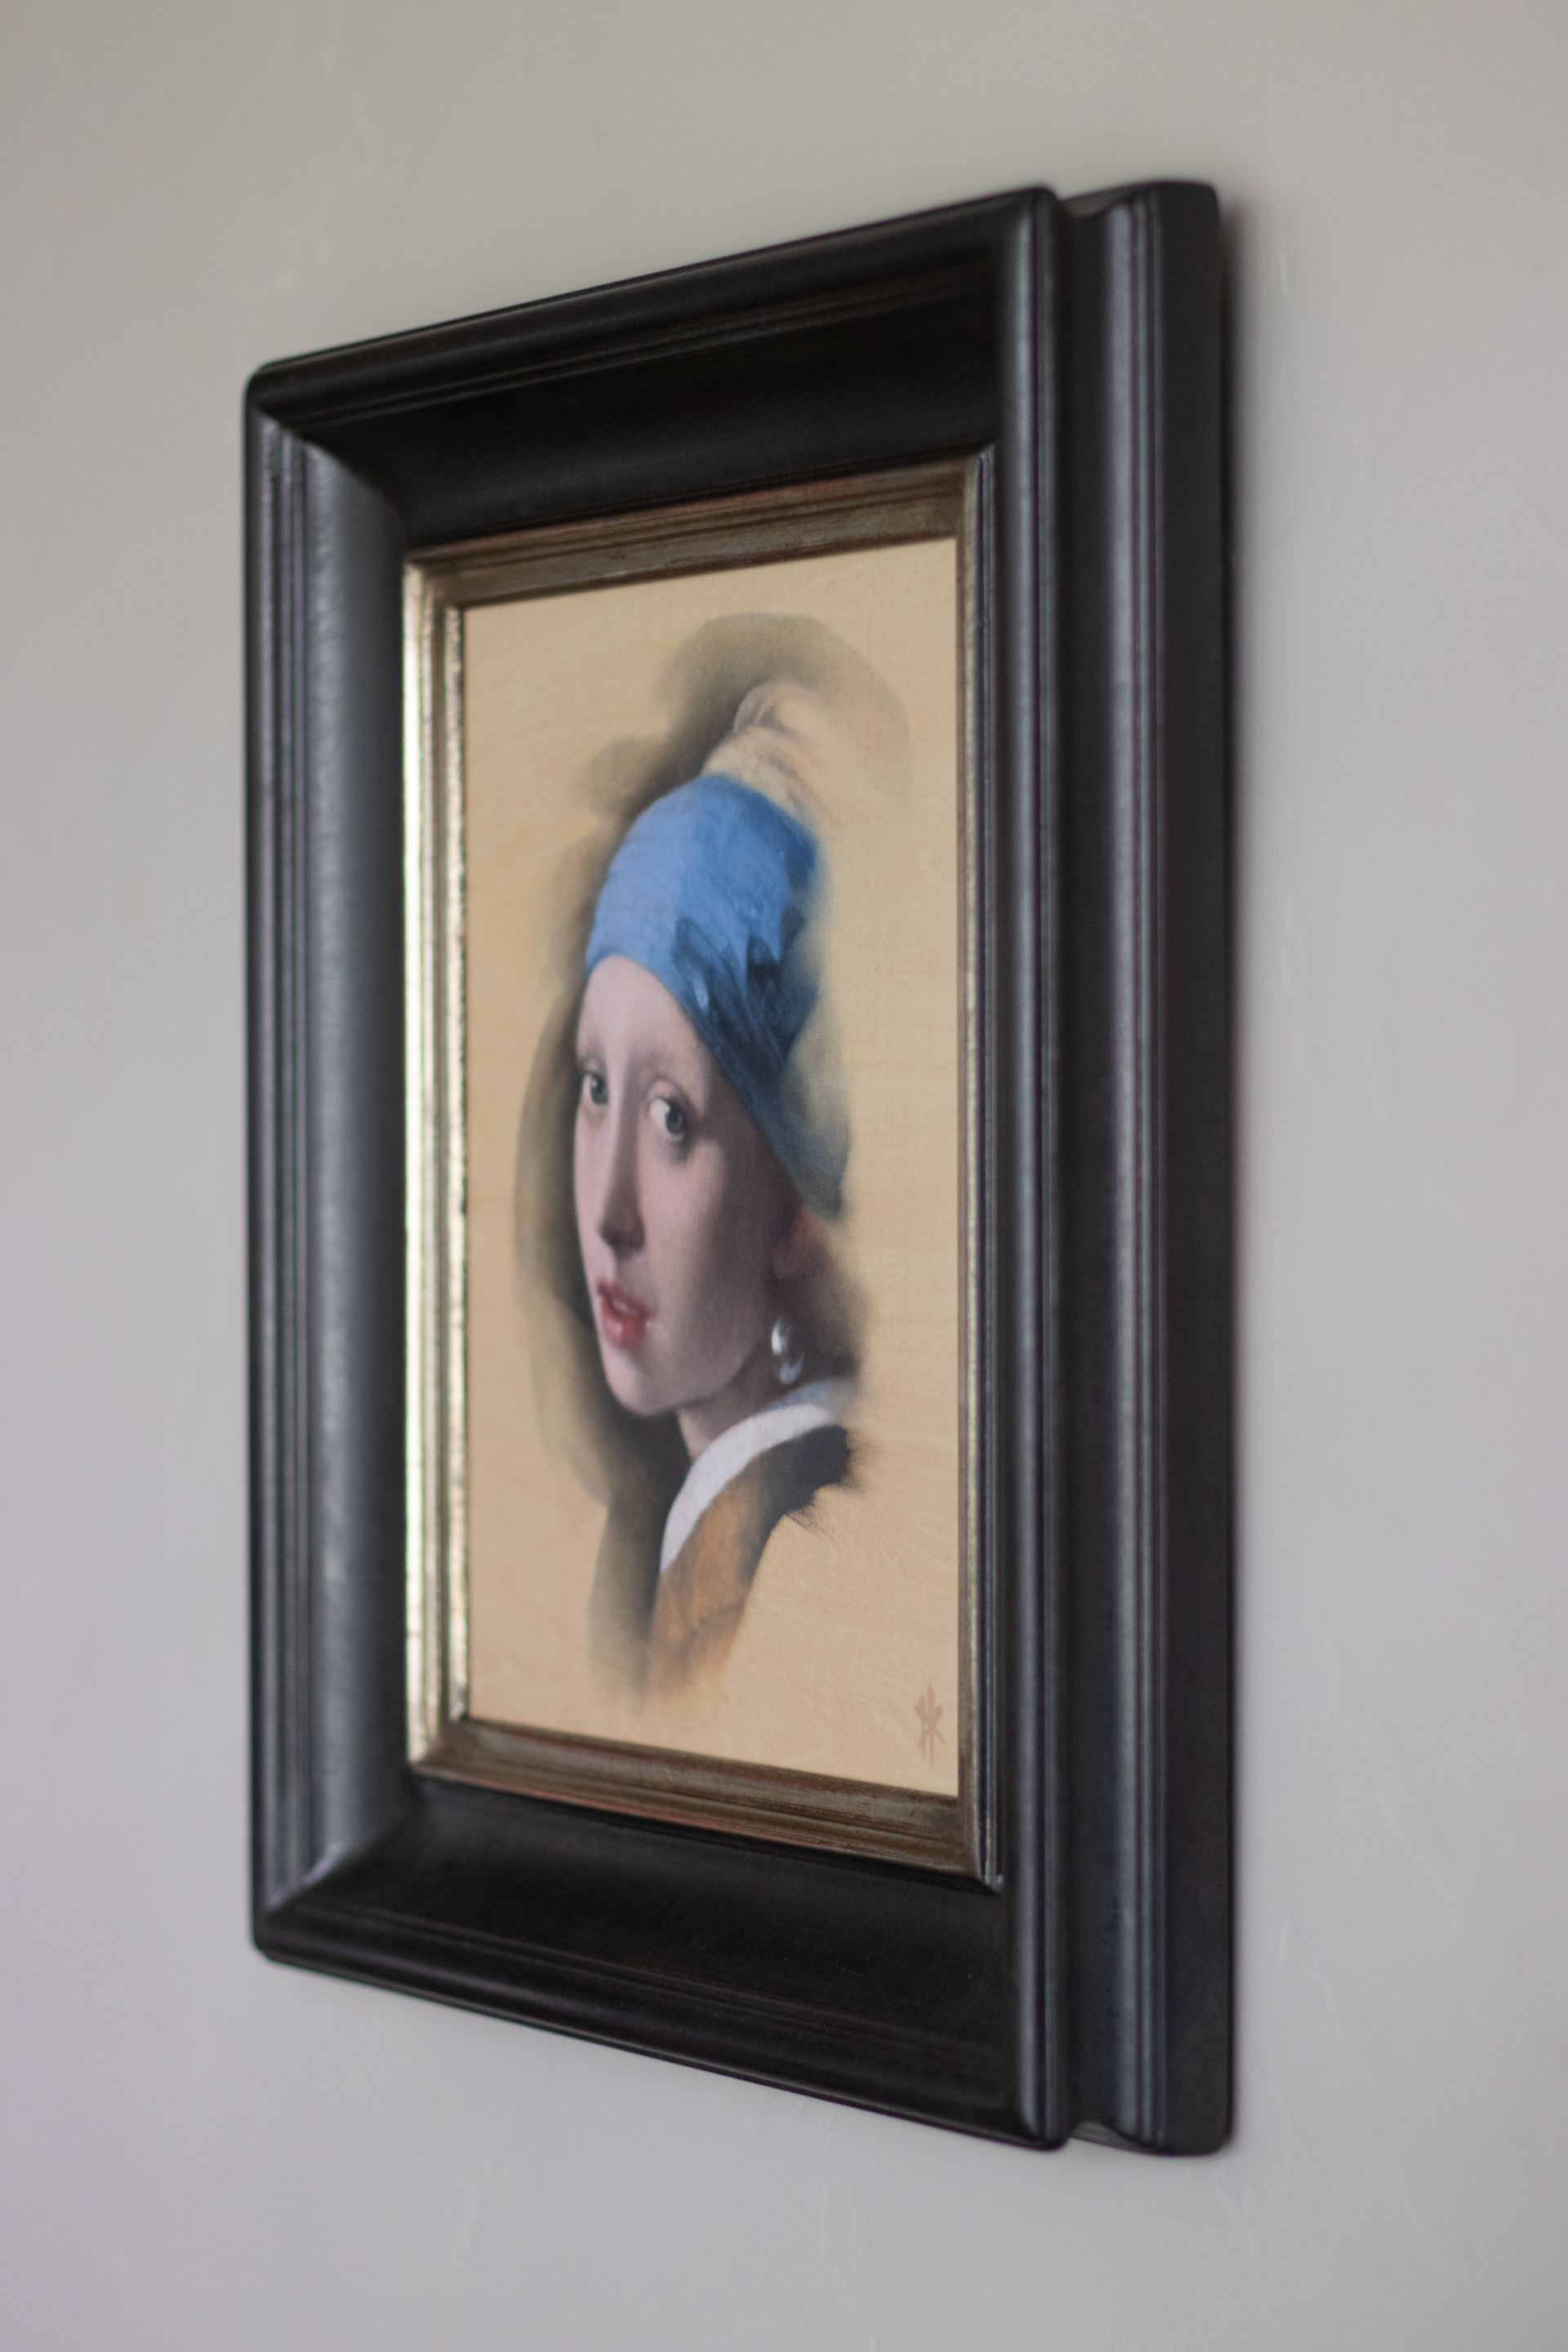 Variation on Vermeer No. 1 by Patrick Kramer